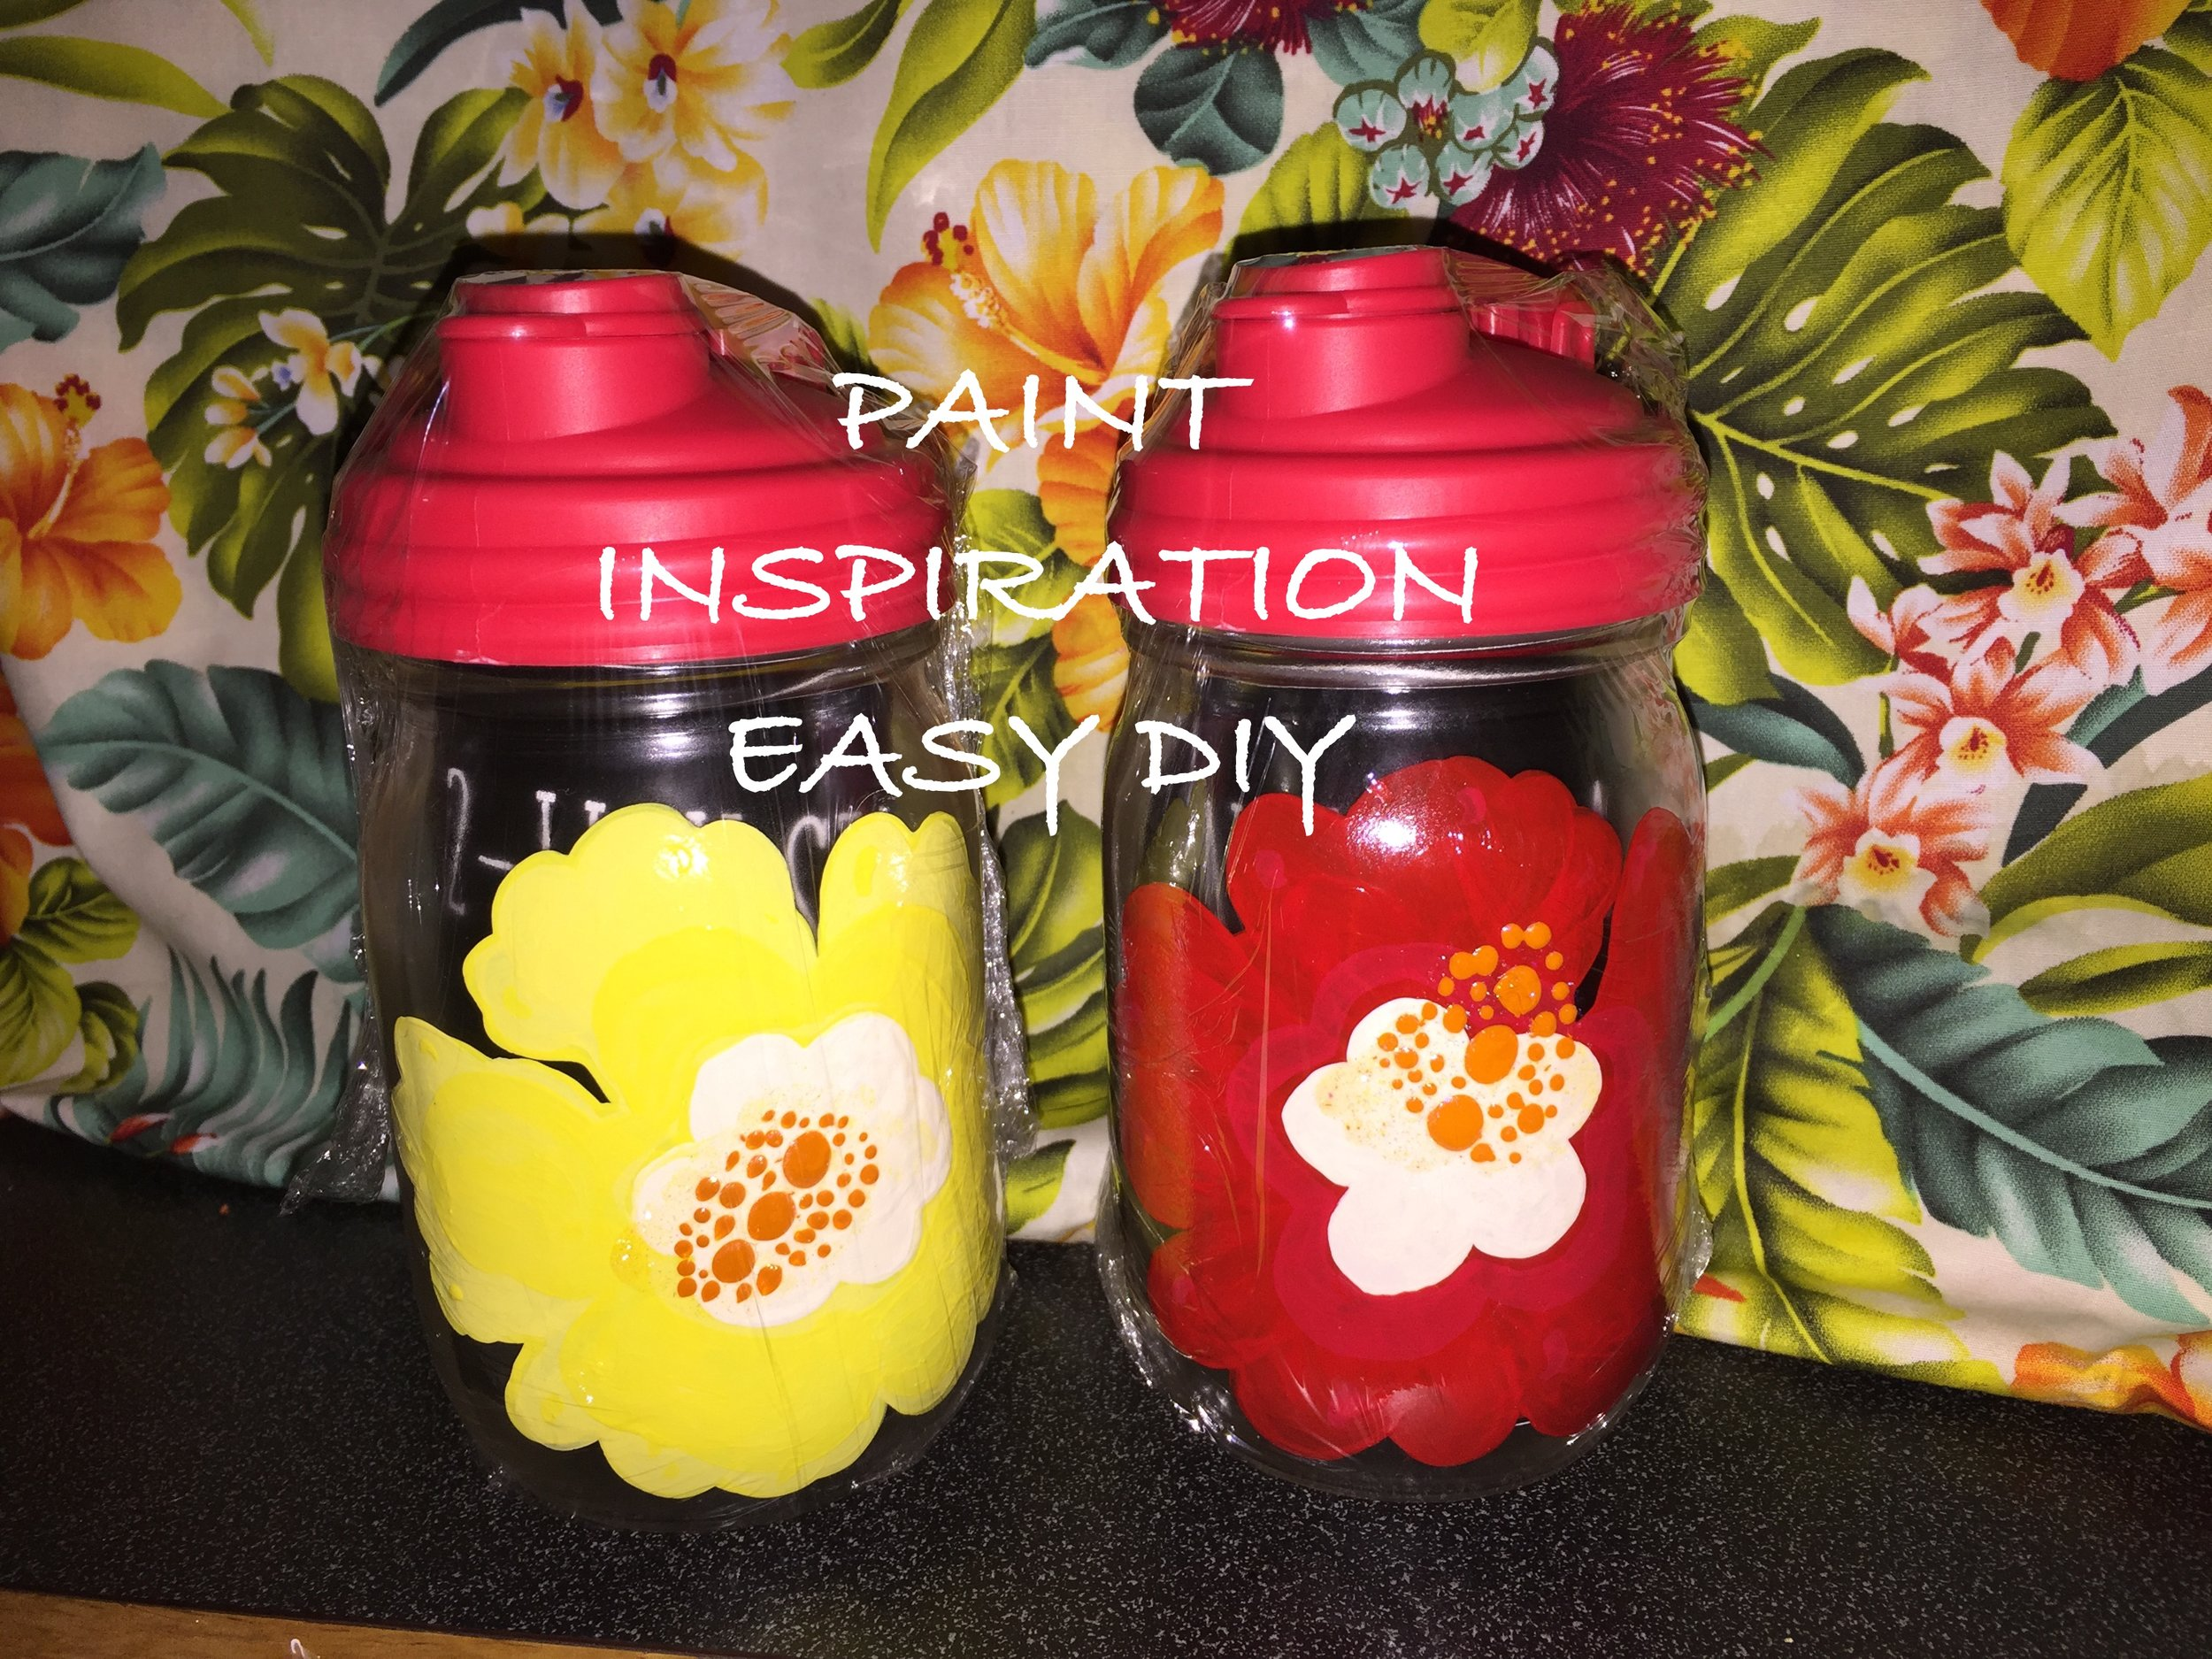 HIBISCUS EASY DIY MASON JAR WITH POUR SPOUT. PAINT INSPIRATION FOR BUSY PEOPLE. MOMENTS OF CALM DURING OUR BUSY LIVES.